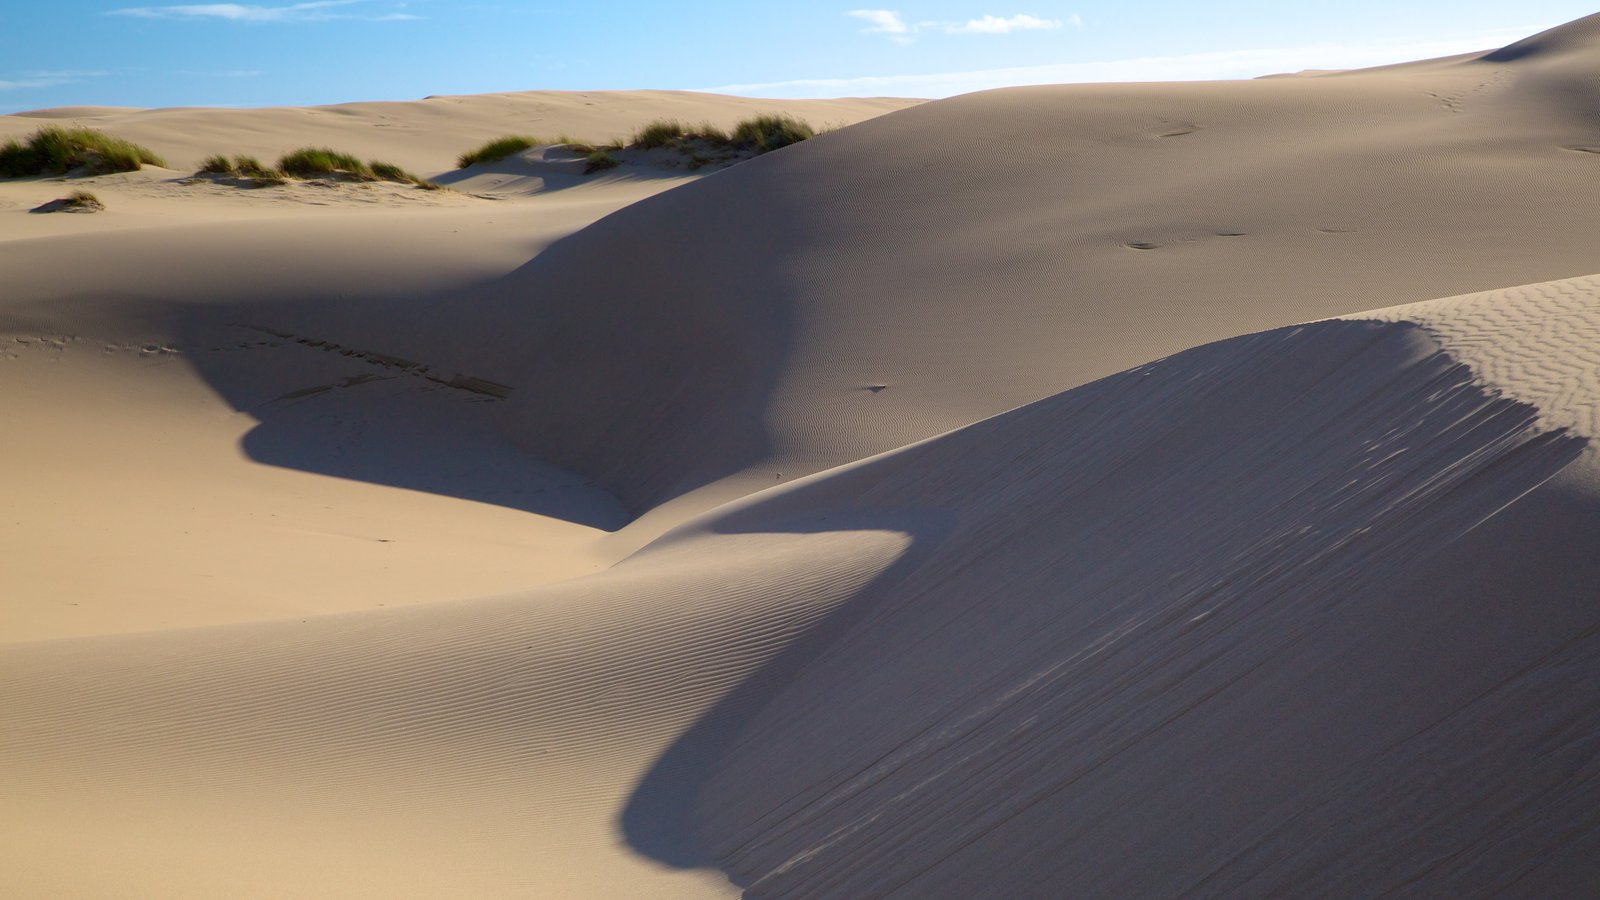 Oregon Dunes National Recreation Area which includes desert views and landscape views